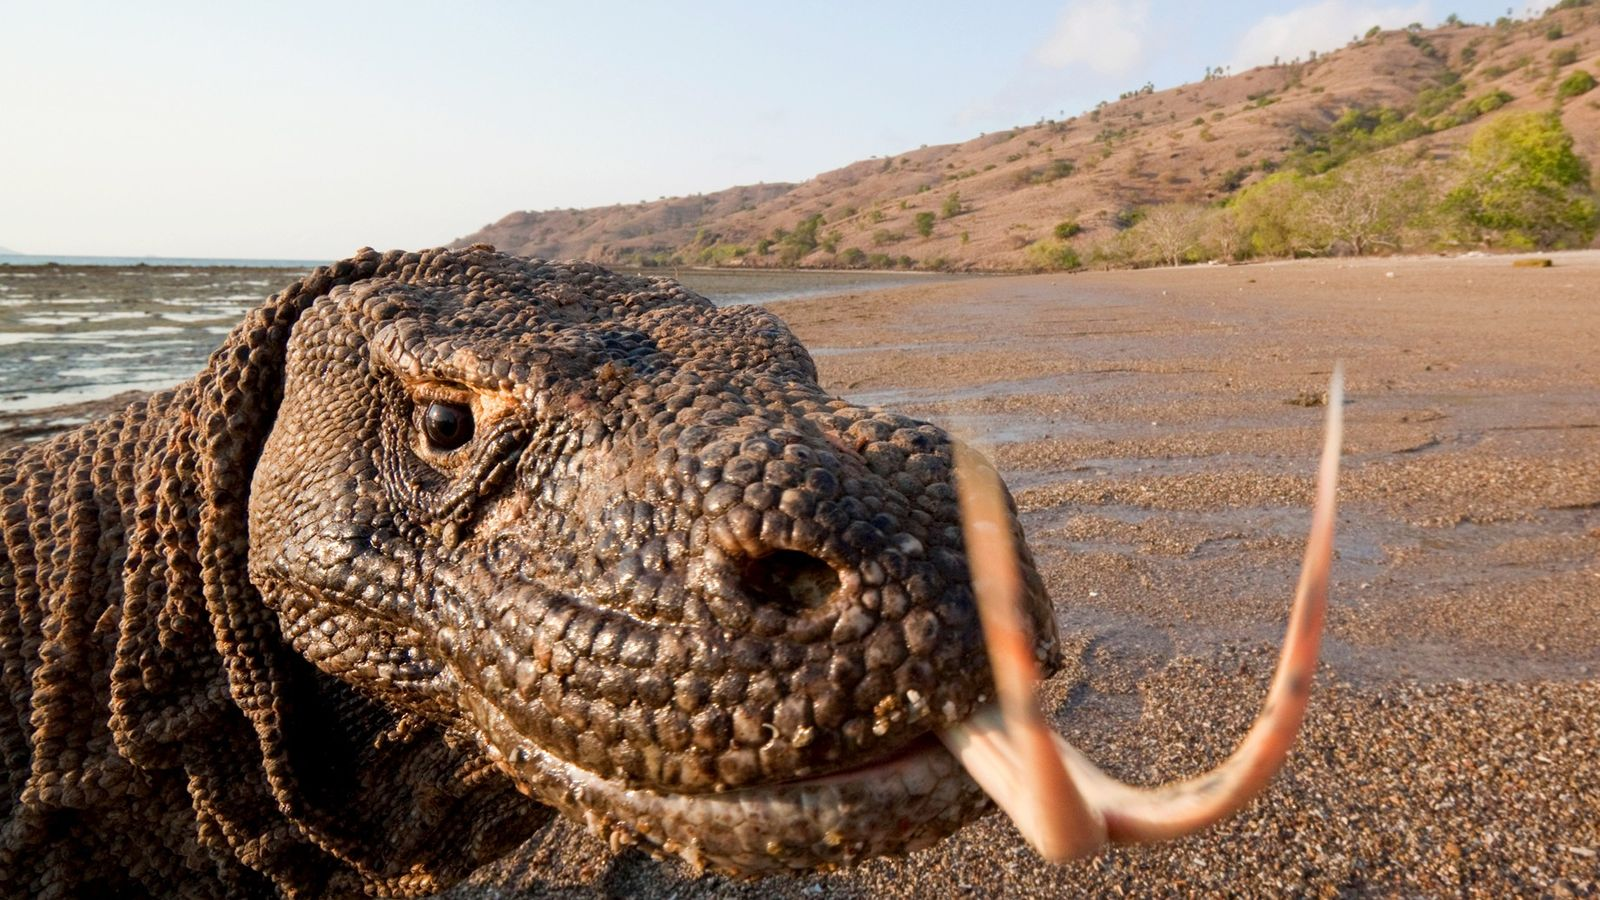 Komodo dragons, which can grow to be 10 feet long and more than 300 pounds, are ...